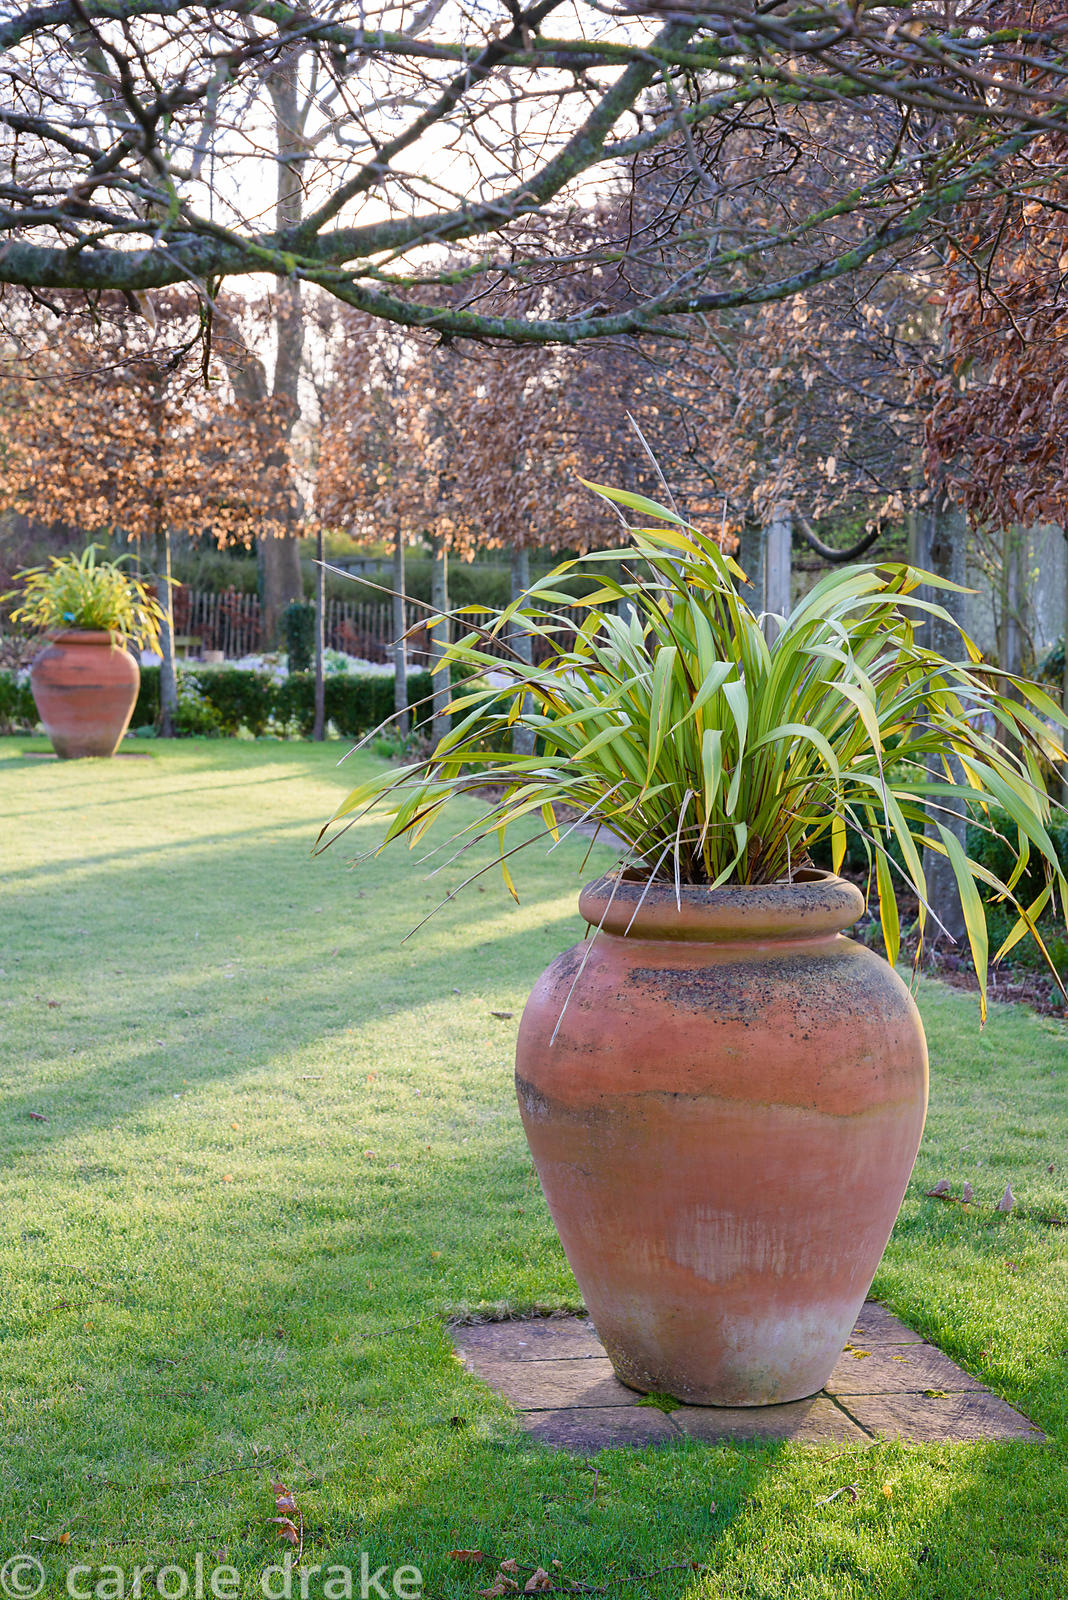 Pleached hornbeams around a lawn with urns containing Phormium tenax 'Yellow Wave' on a winter's morning at The Down House, H...